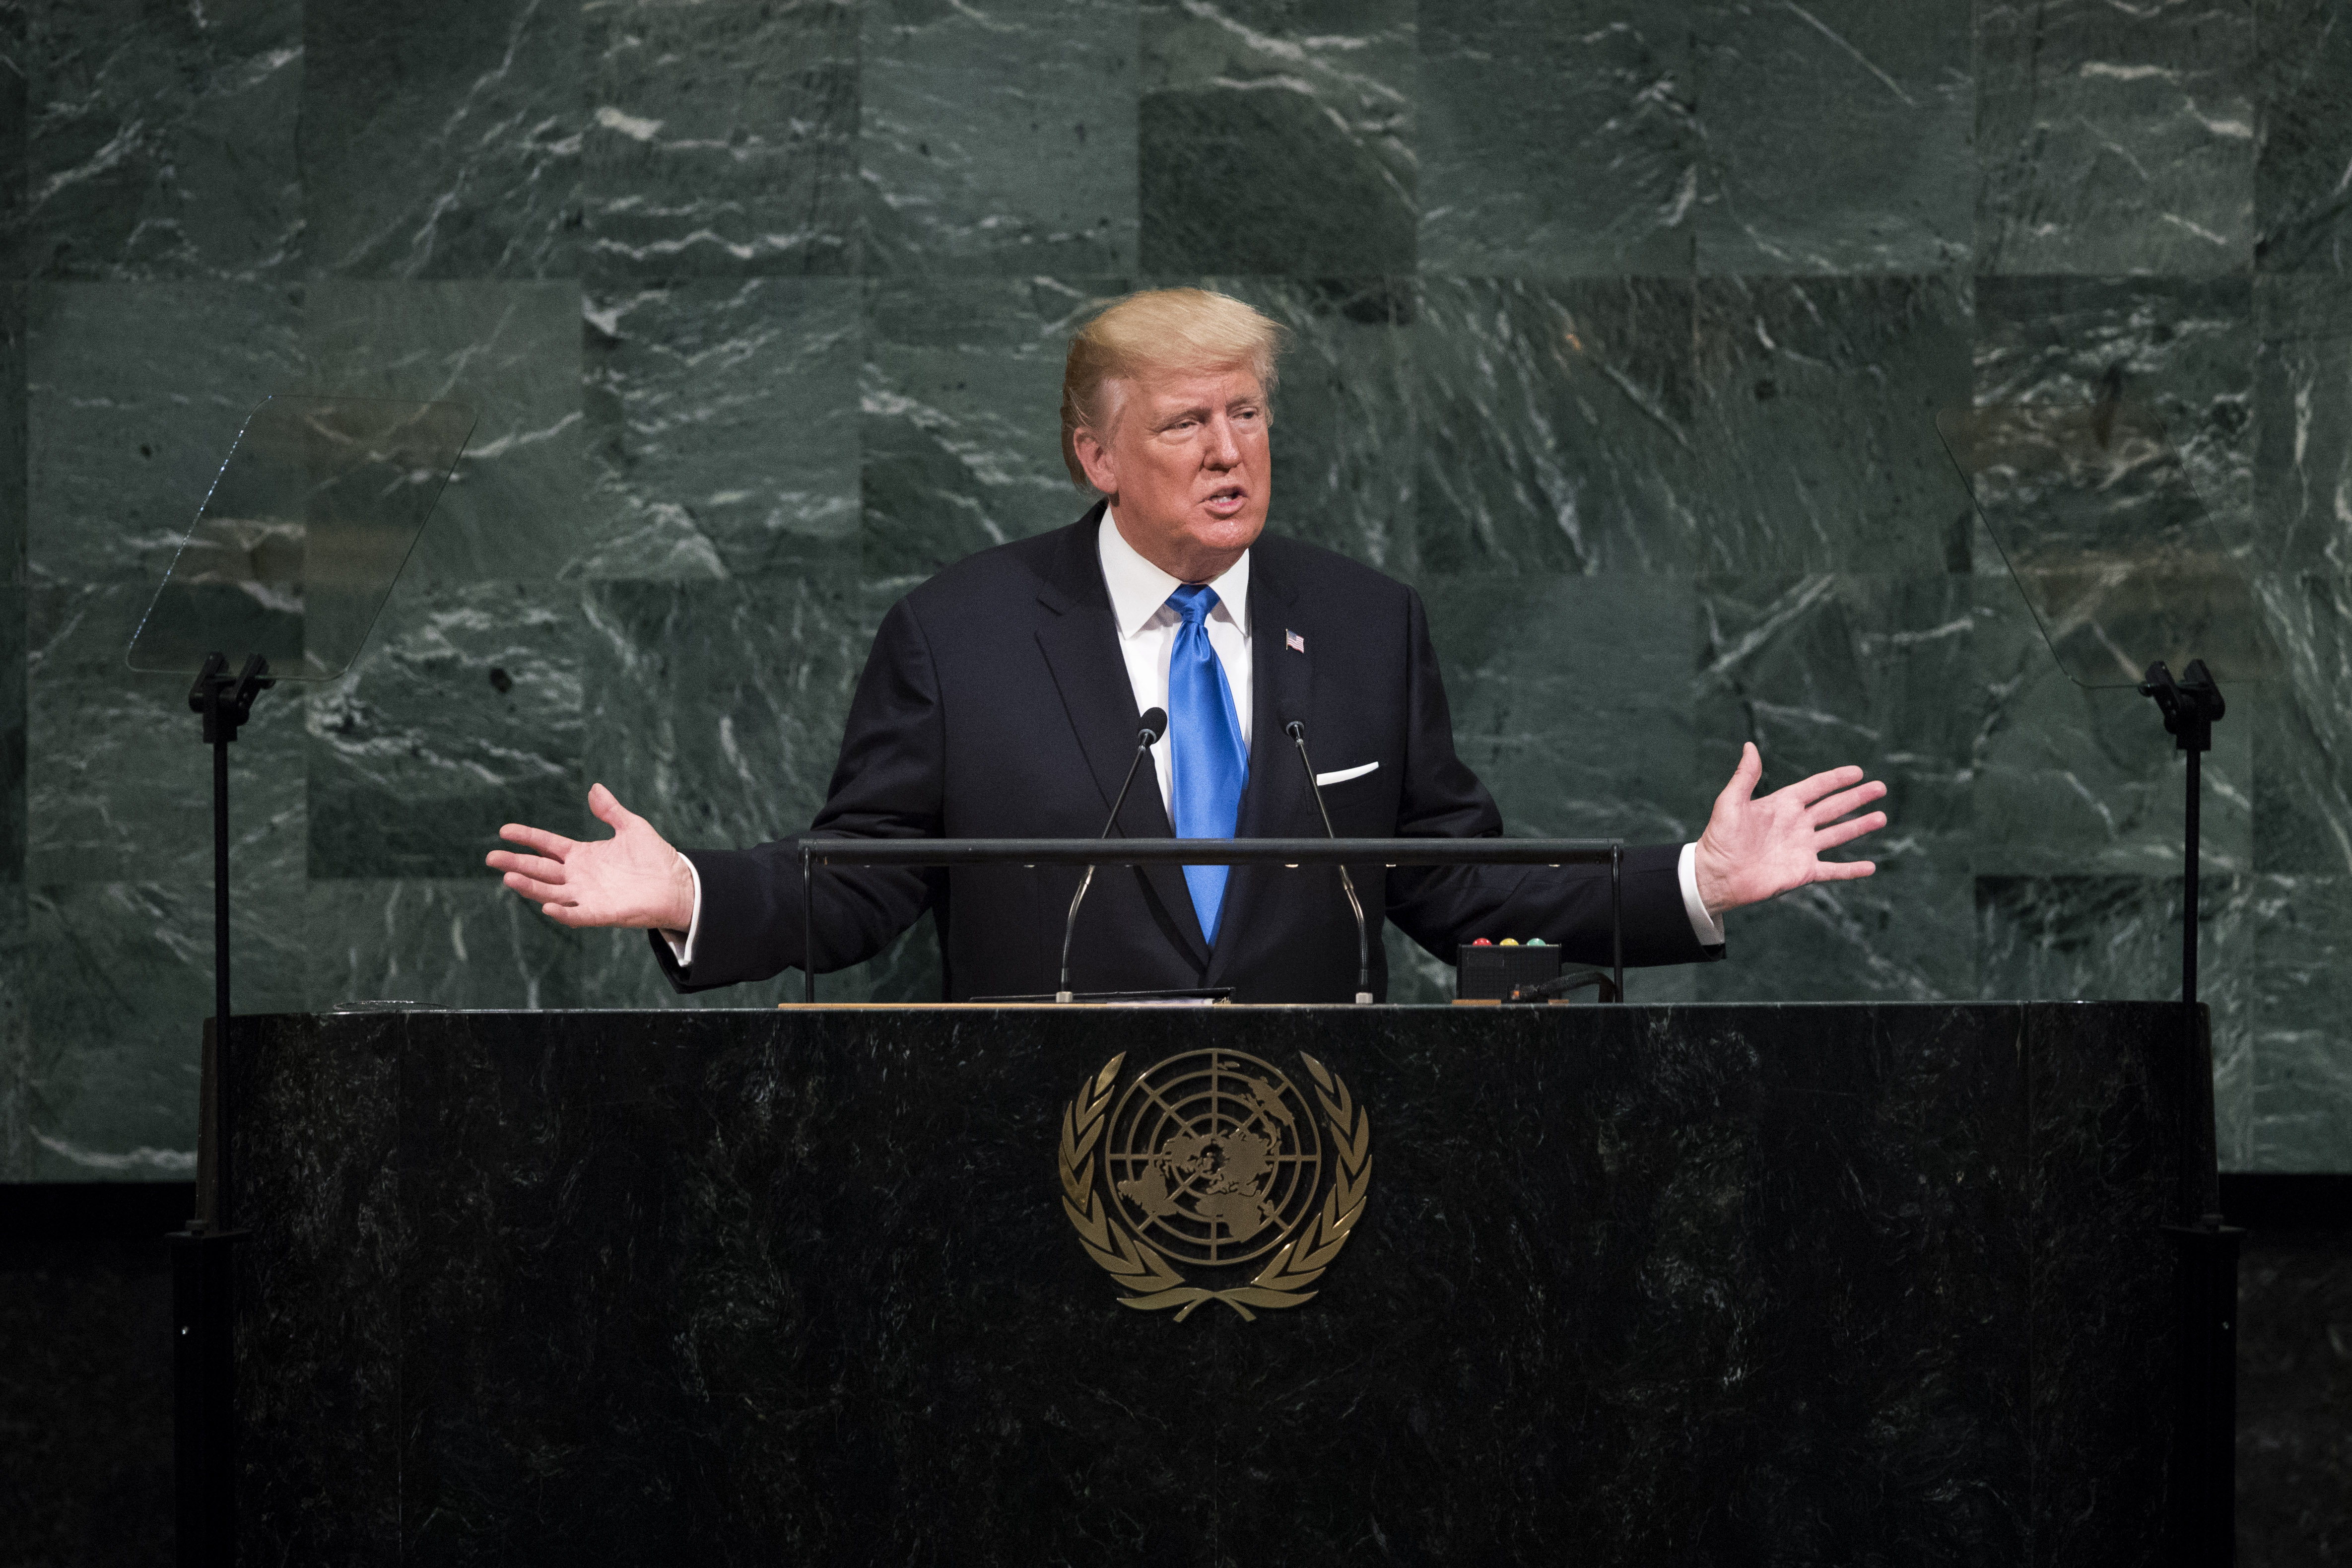 US President Donald Trump addresses the 72nd Annual UN General Assembly in New York on Sept. 19, 2017.